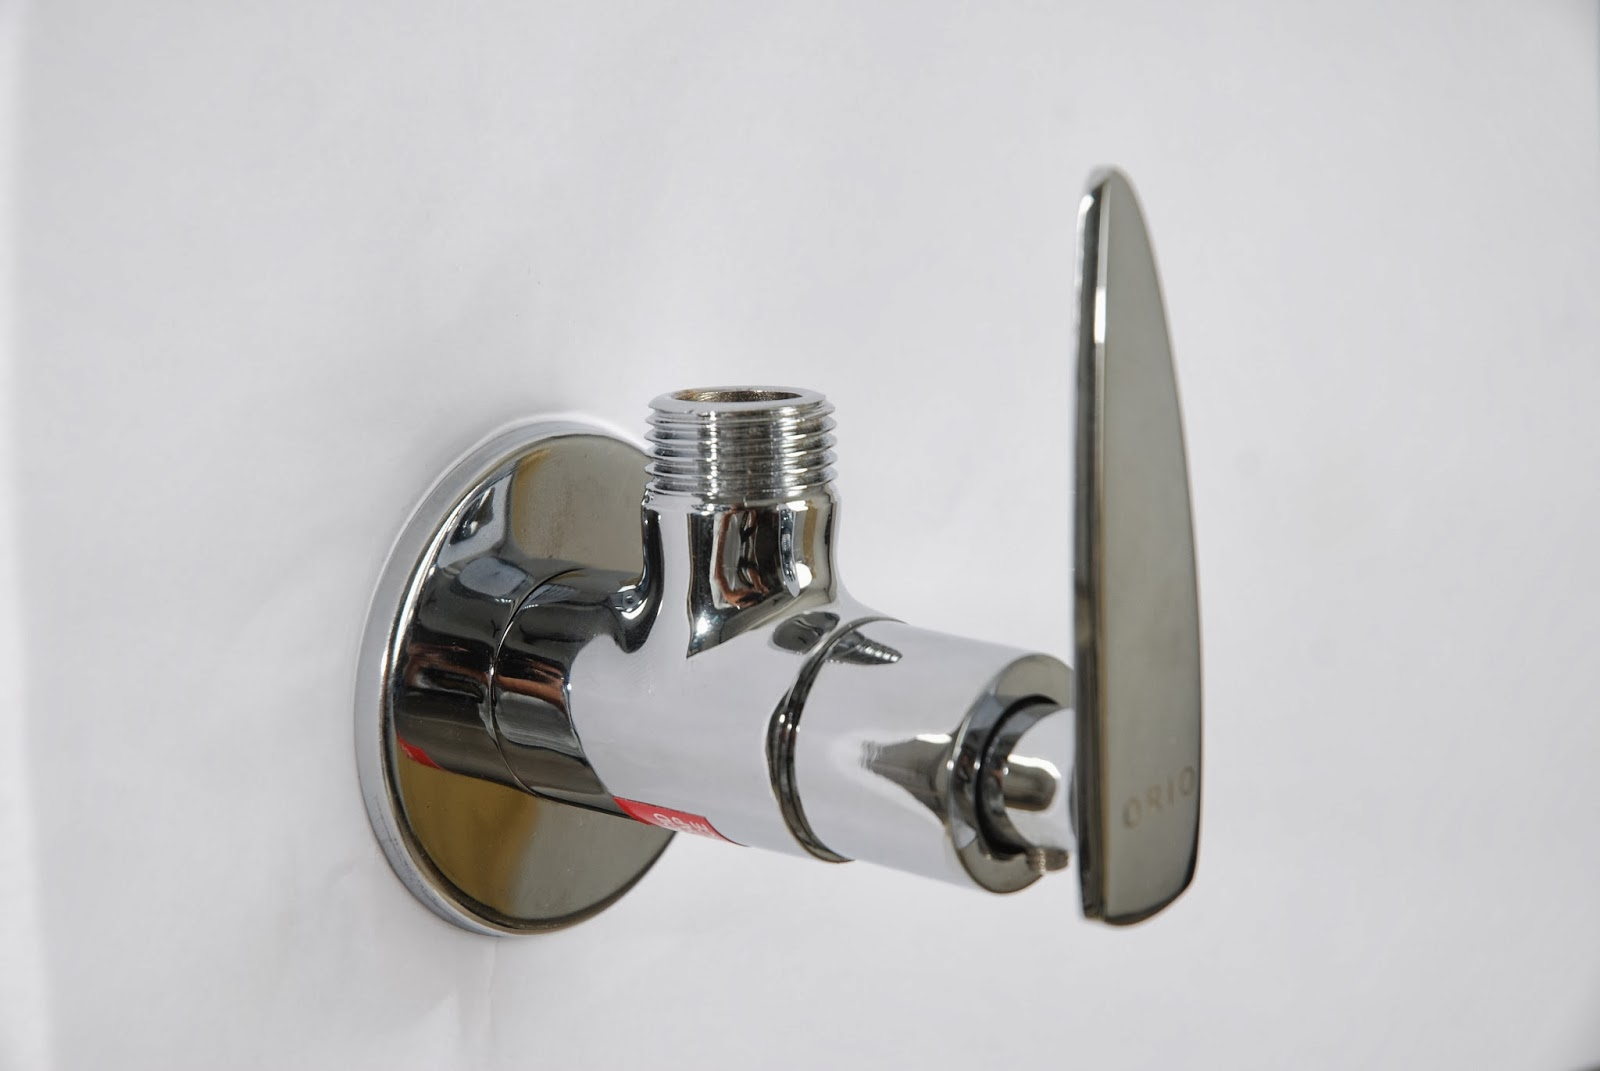 Brass bathroom fittings - Bathroom Fittings Manufacturer In India Manufacturer Of Cp Bath We Mahavir Metal Industries Iso 9001 2008 Certified Company Manufacturing Brass Chrome